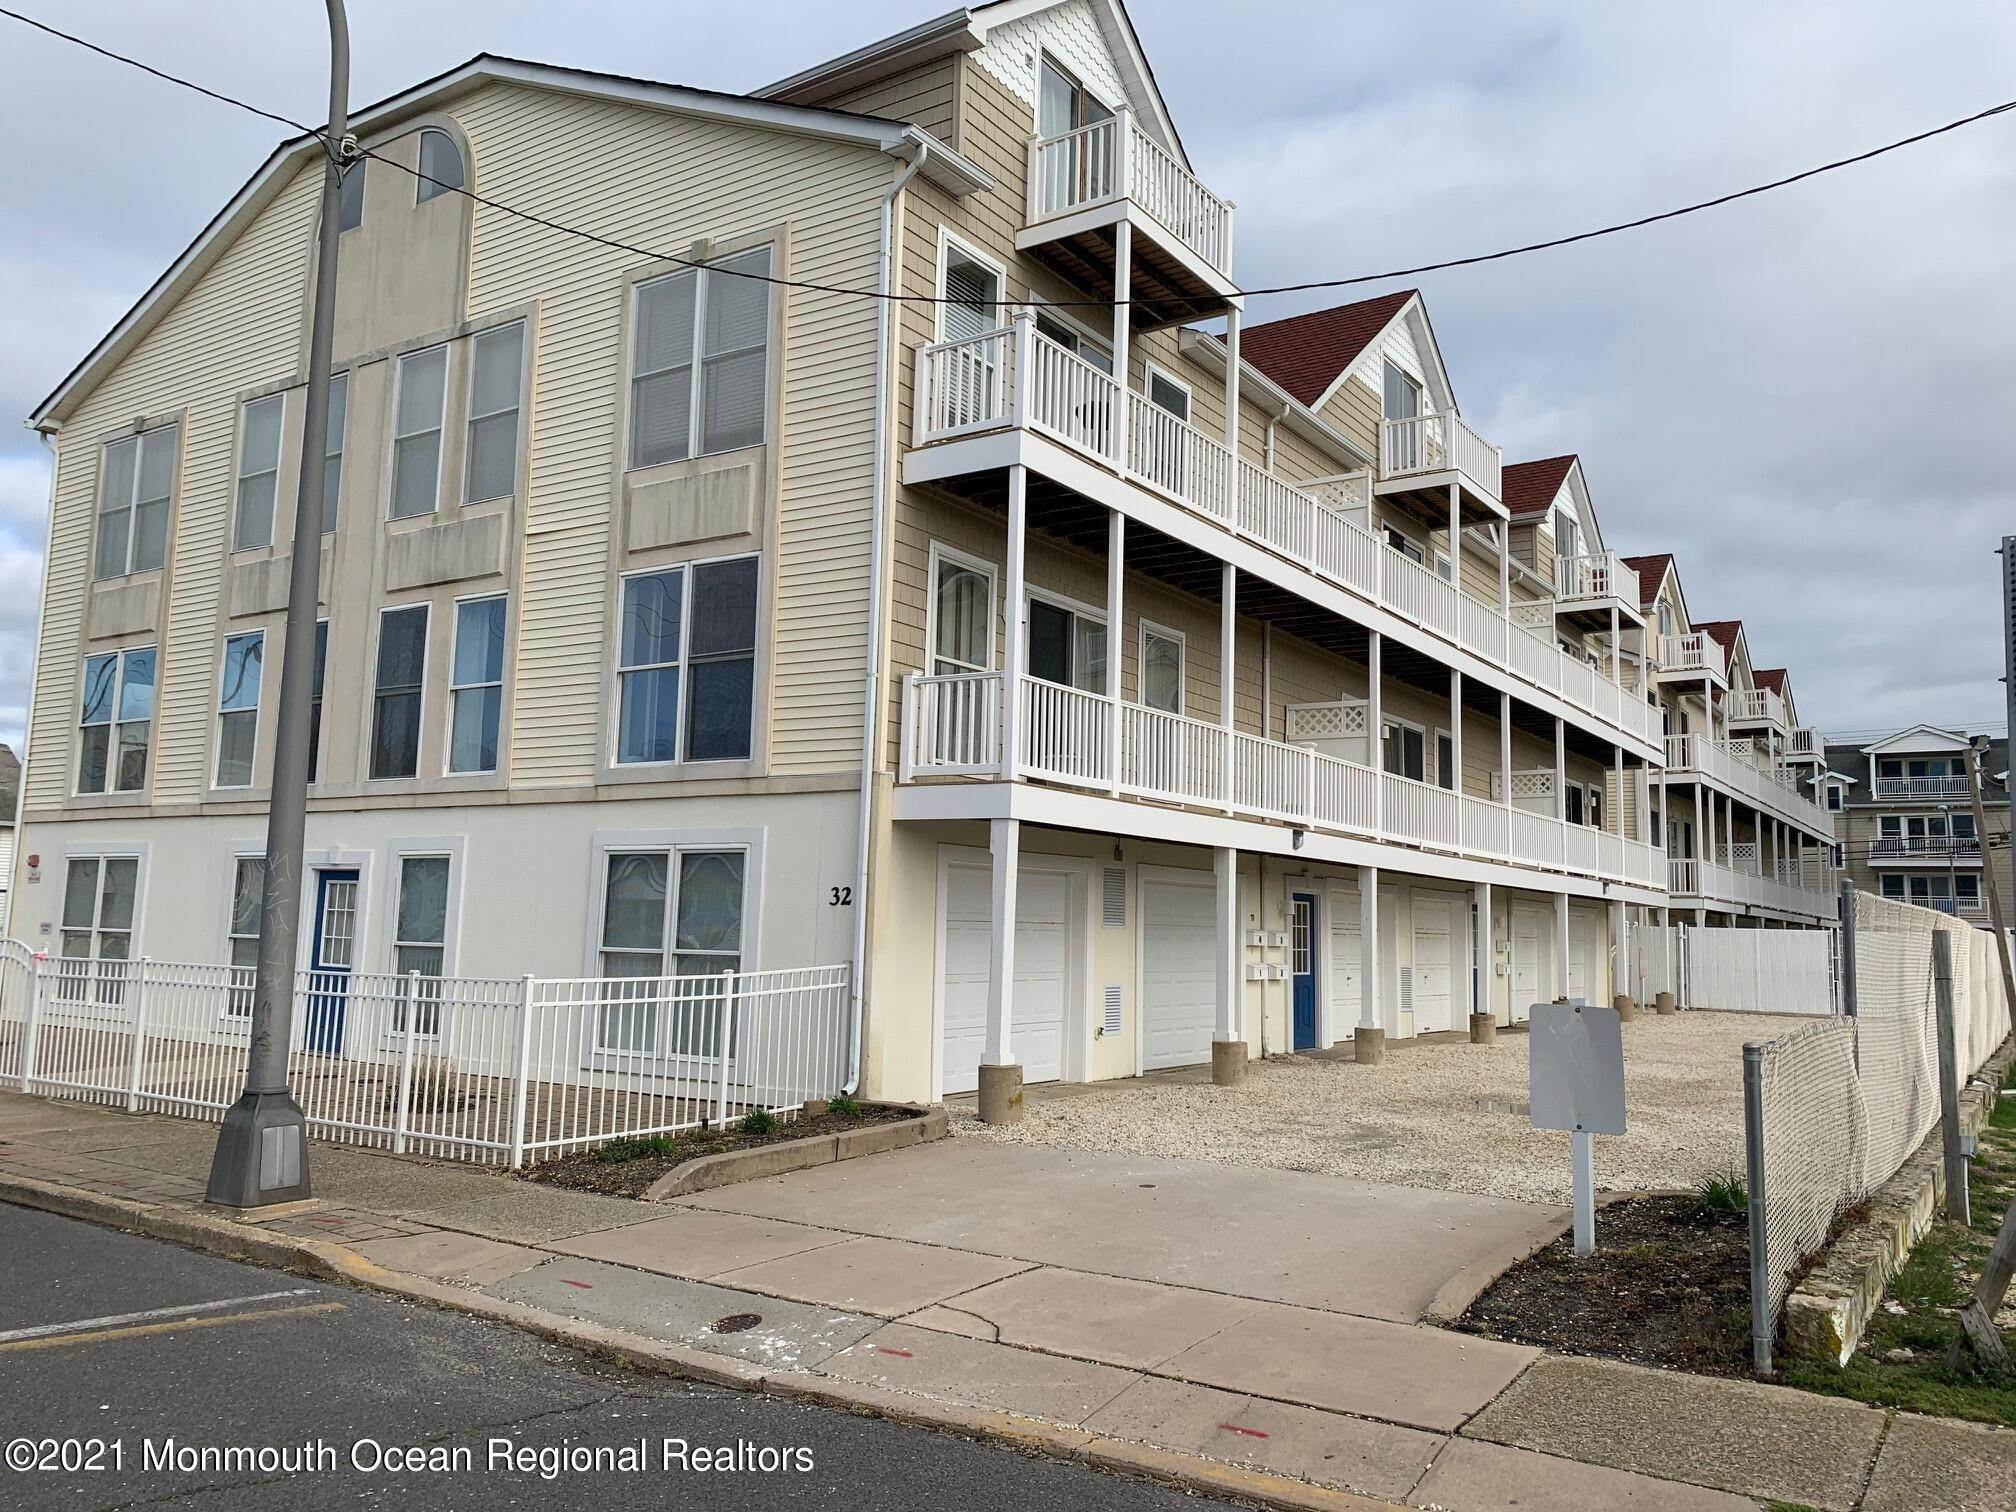 19. Condominiums for Sale at 32 Webster Avenue Seaside Heights, New Jersey 08751 United States